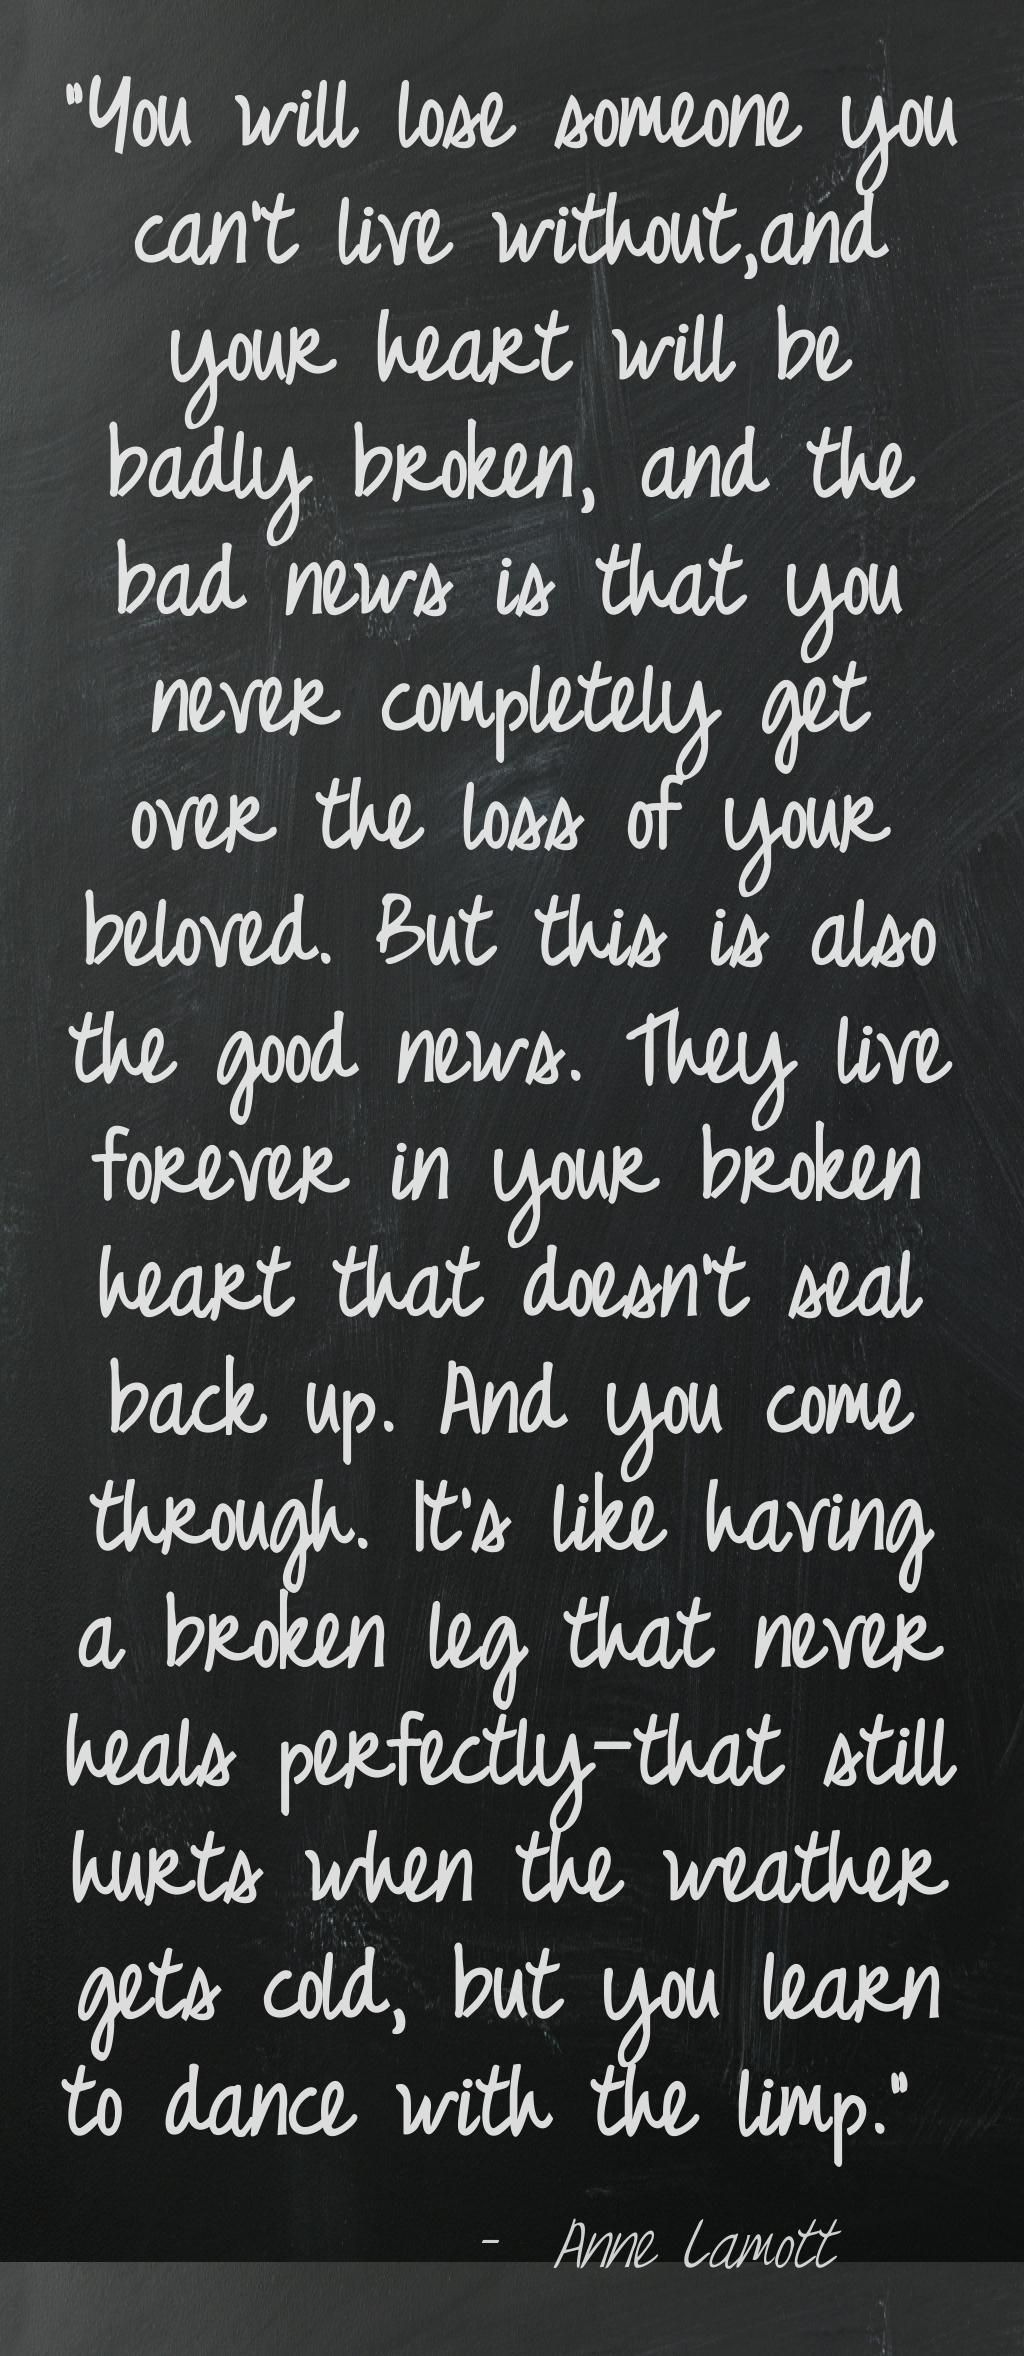 Pinstamatic Get More From Pinterest Grief Quotes Quotes About Moving On Quotes